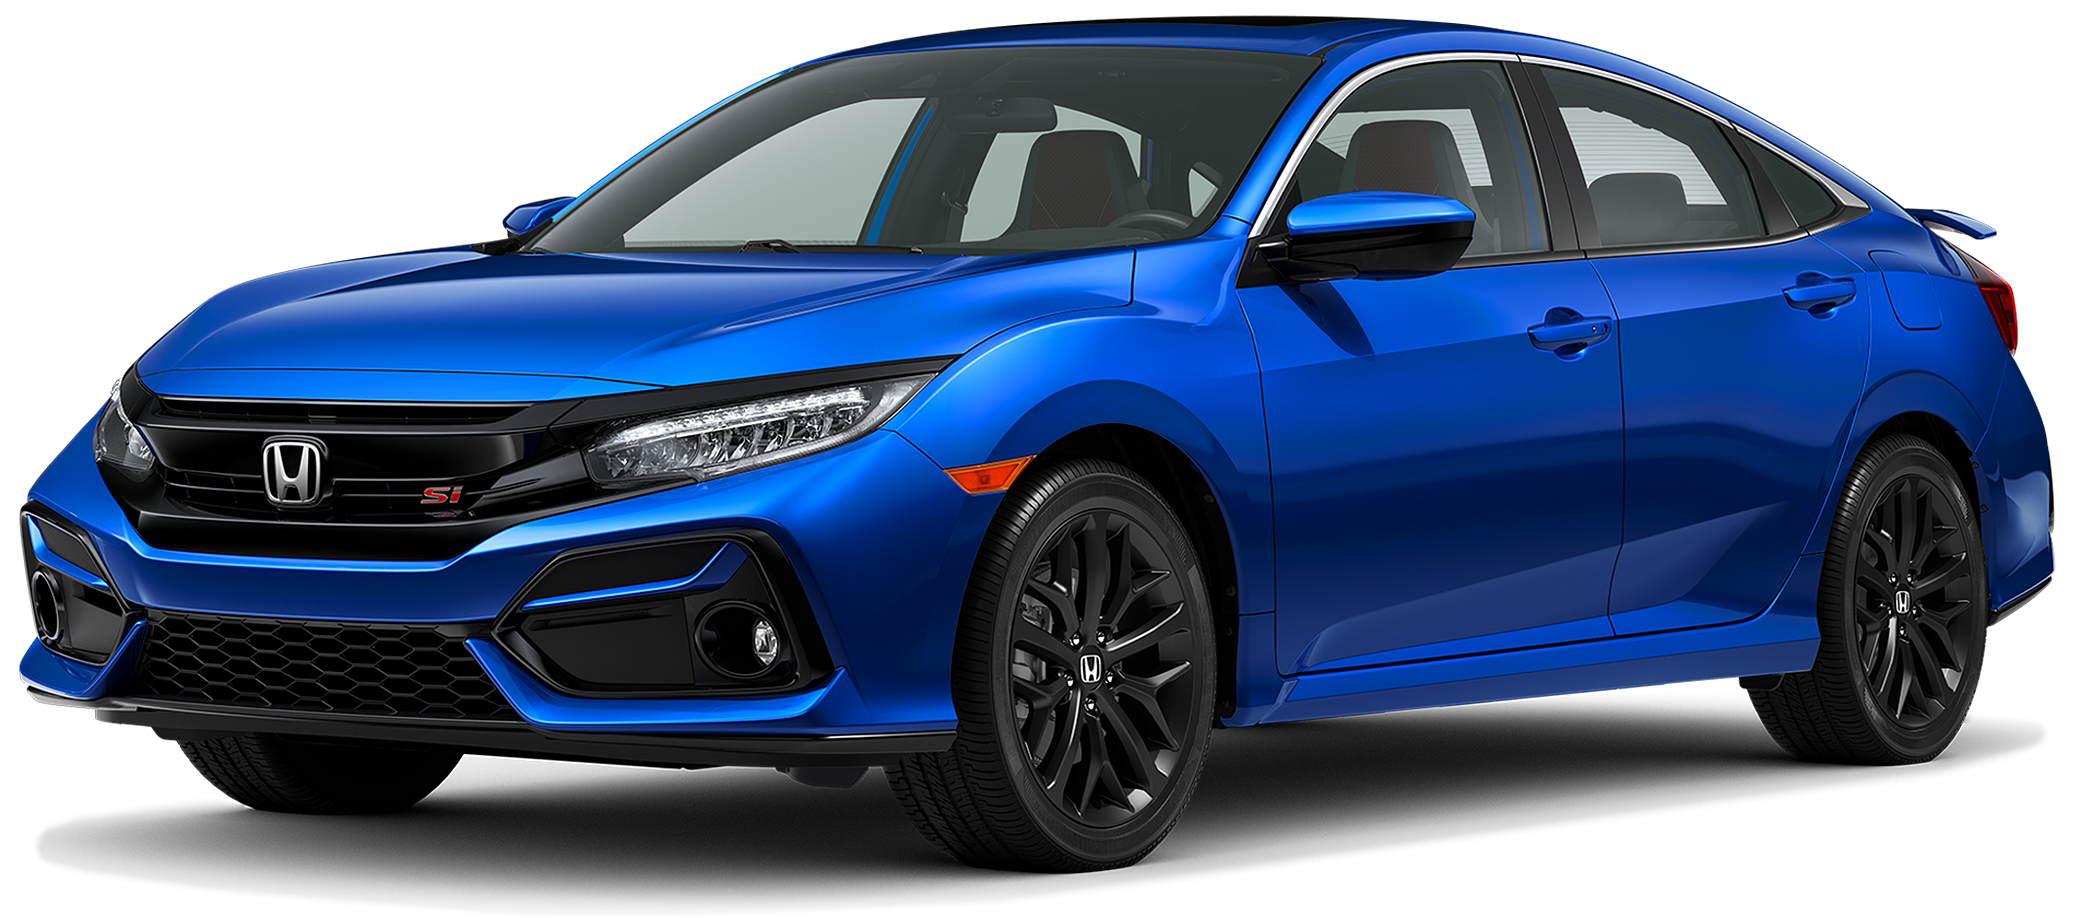 2020 Honda Civic Si Incentives, Specials & Offers in Auburn NY